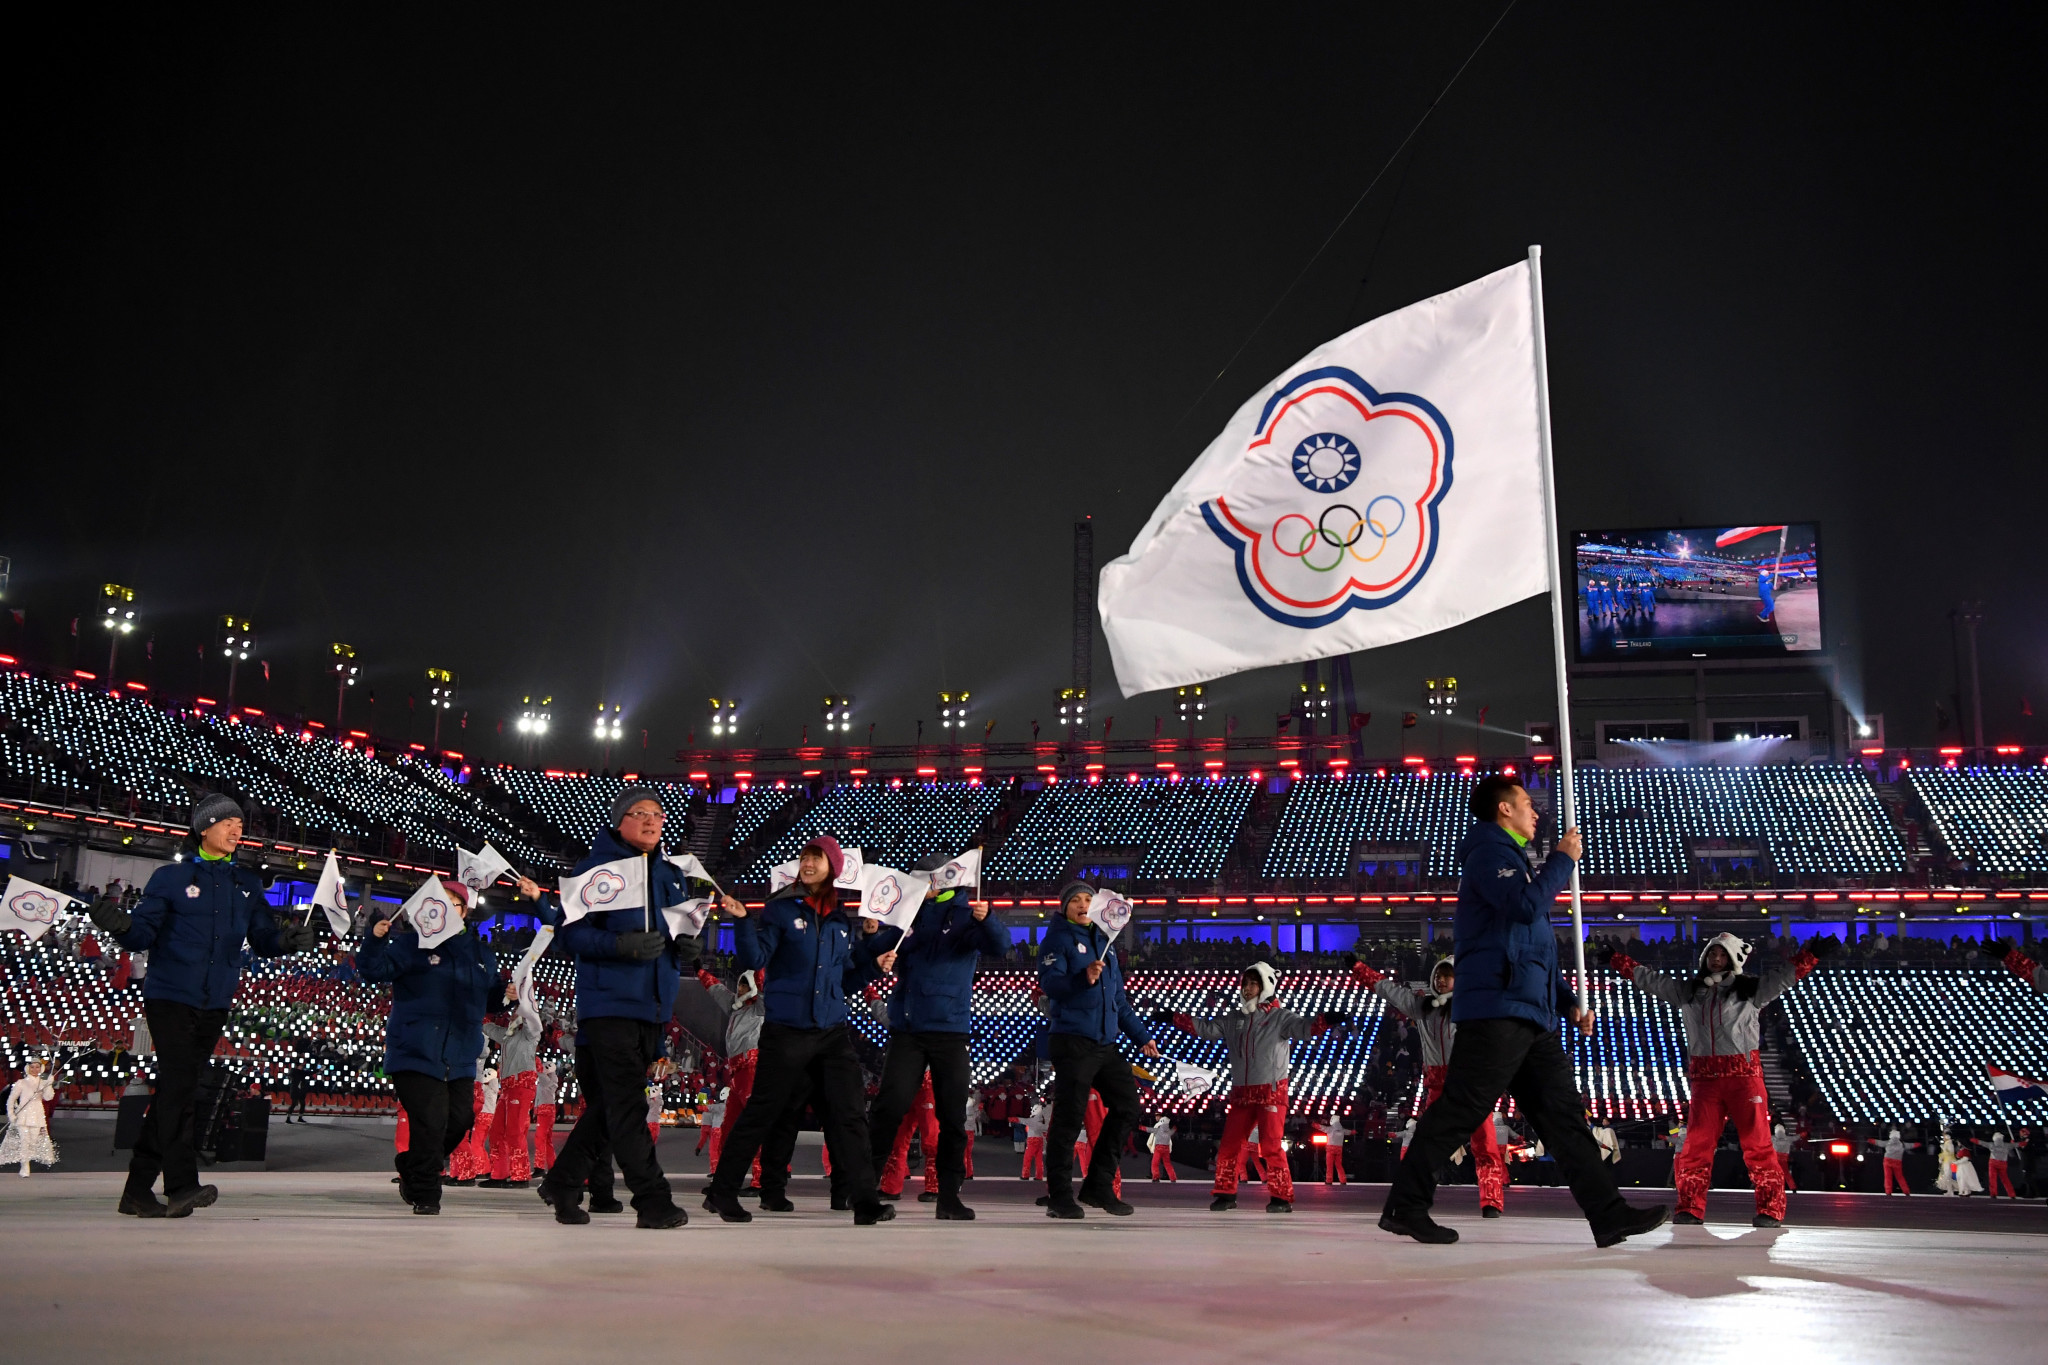 """Taiwanese campaigners have submitted more than 520,000 signatures calling for a referendum on whether their national team should compete as """"Taiwan"""" and not """"Chinese Taipei"""" at the Tokyo 2020 Olympic Games ©Getty Images"""